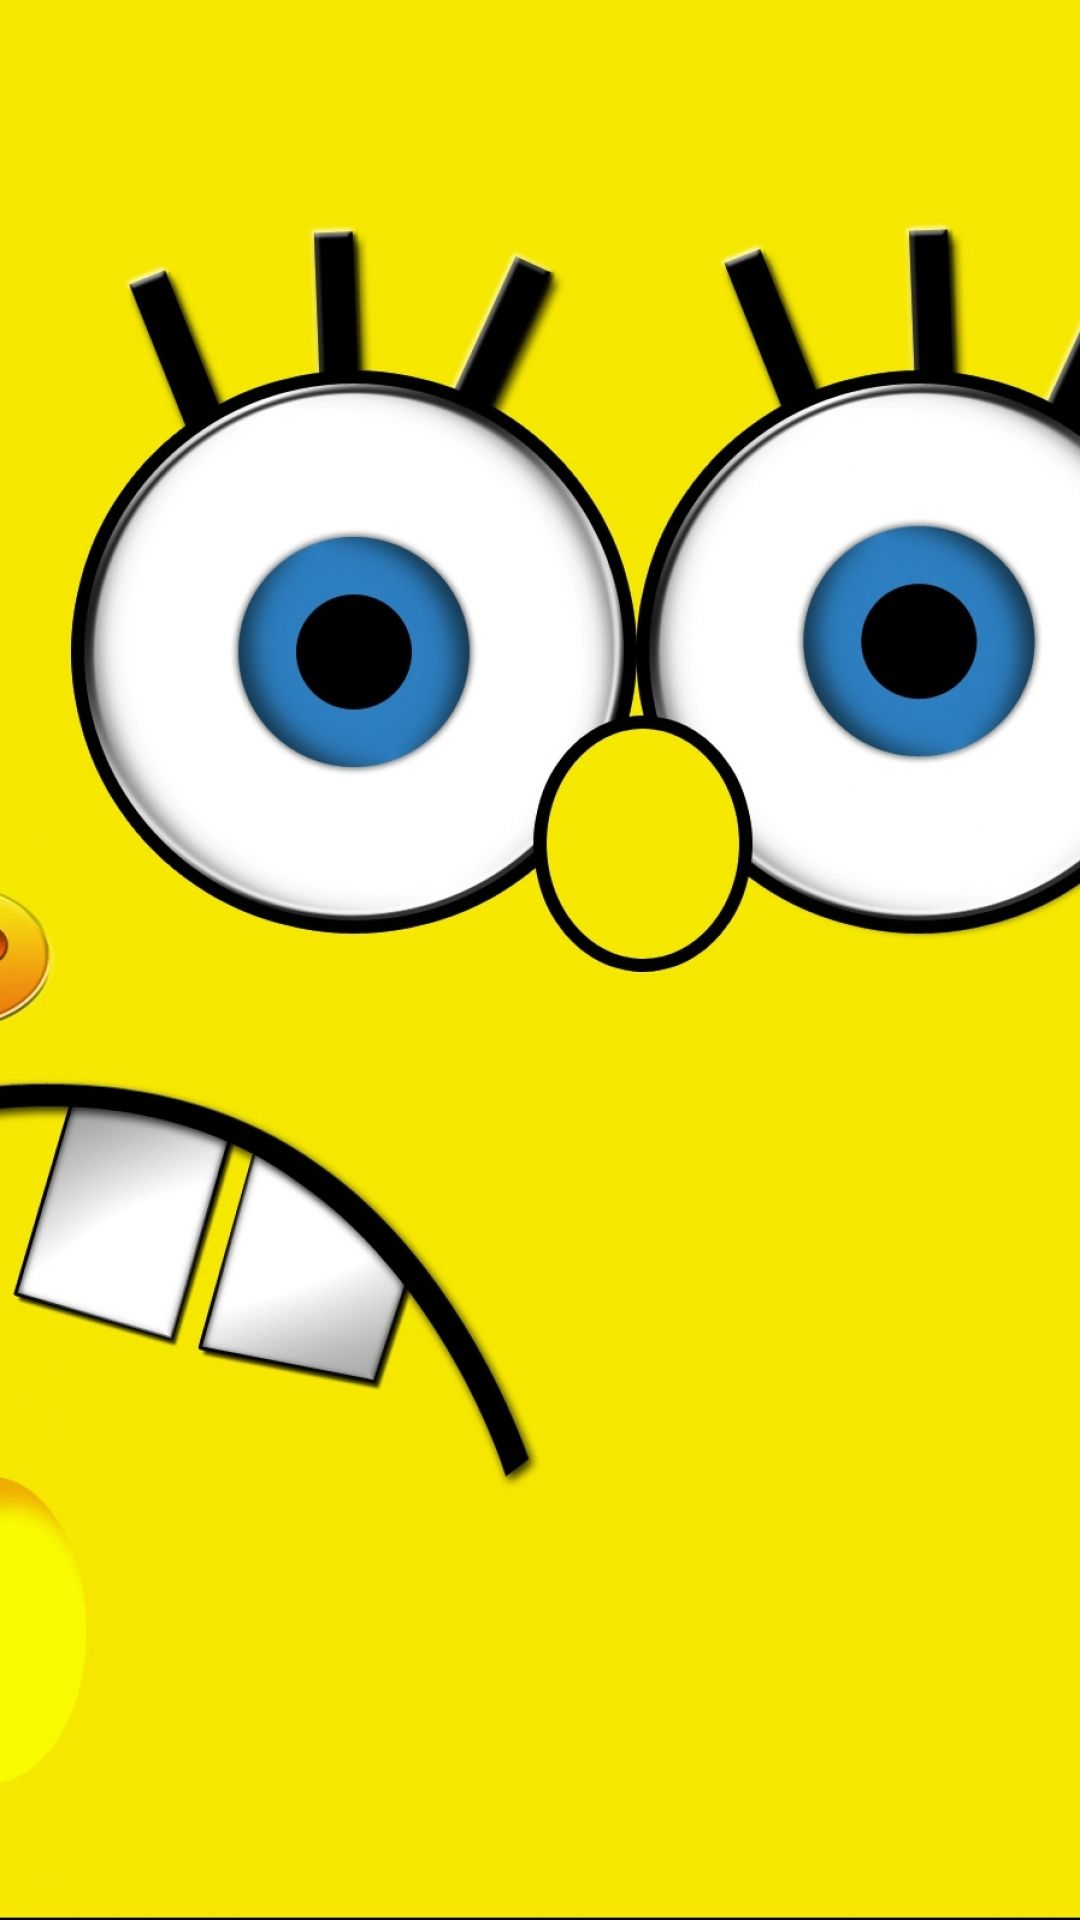 1080x1920 TV Show/Spongebob Squarepants (1080x1920) Wallpaper ID ...